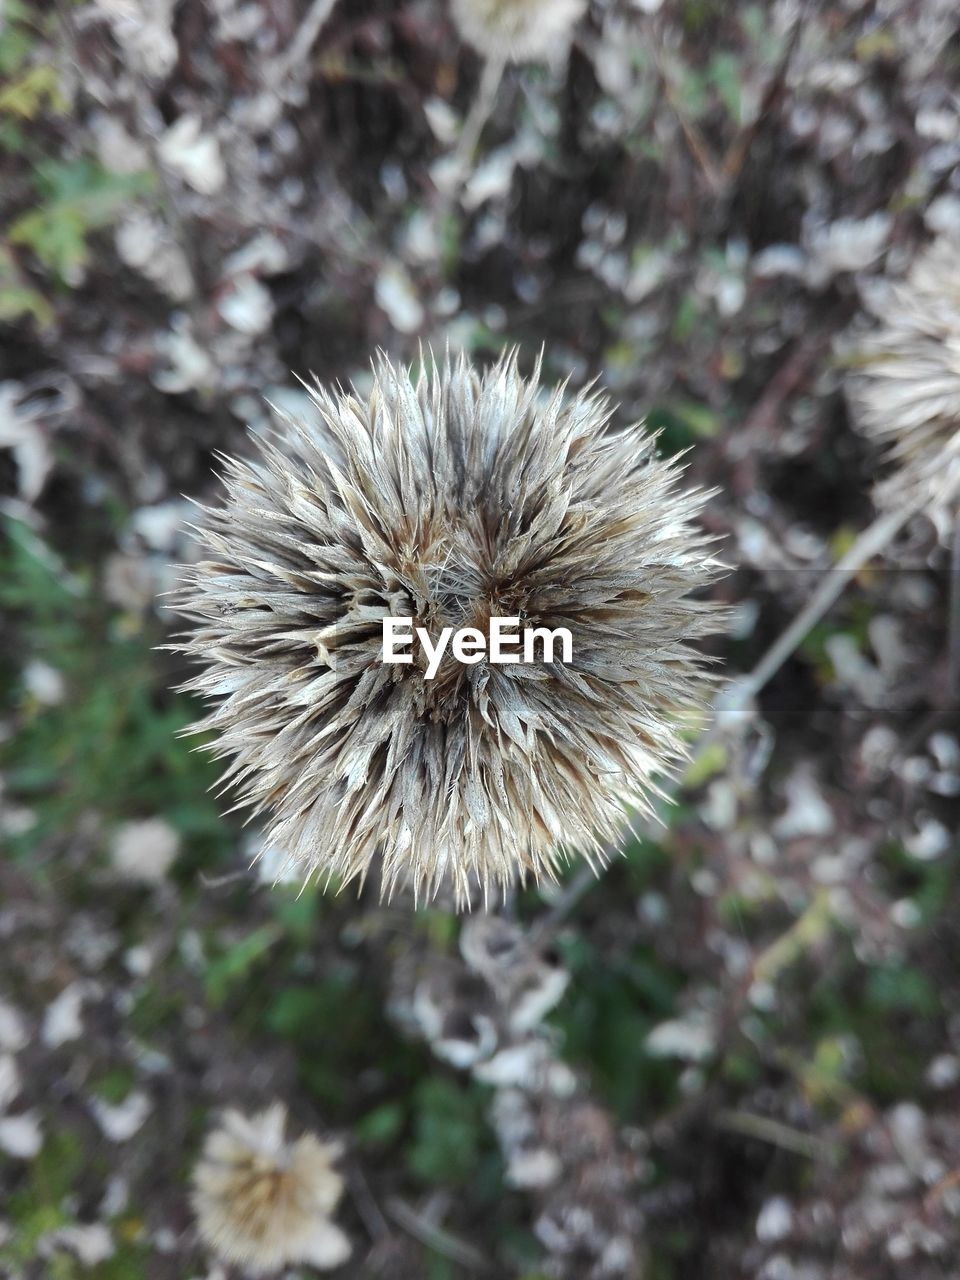 flower, plant, fragility, vulnerability, flowering plant, beauty in nature, close-up, nature, freshness, growth, field, no people, focus on foreground, dandelion, day, land, high angle view, outdoors, inflorescence, flower head, softness, dandelion seed, wilted plant